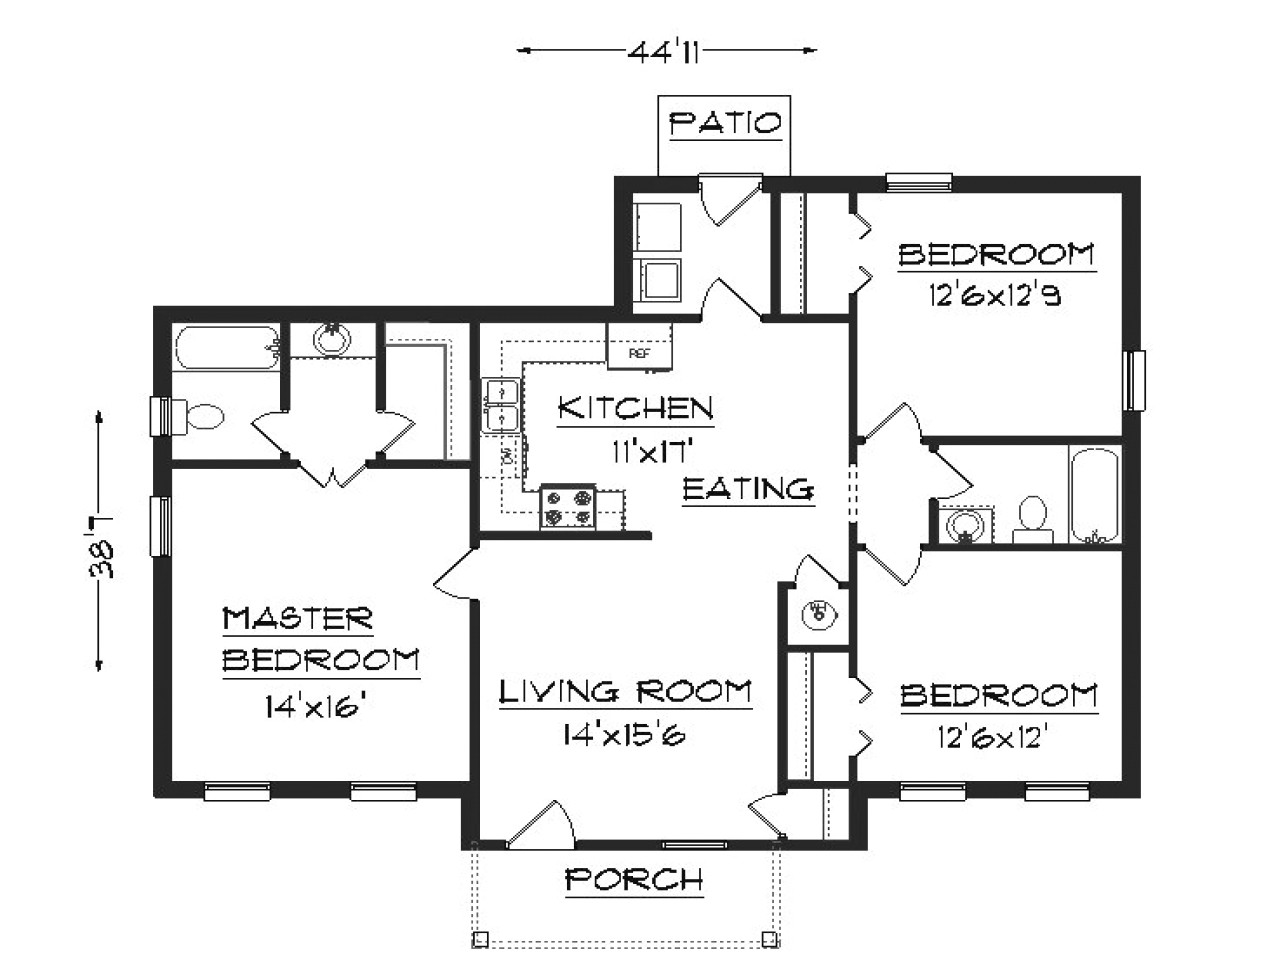 9b450504f9e330f8 3 bedroom house plans simple house plans